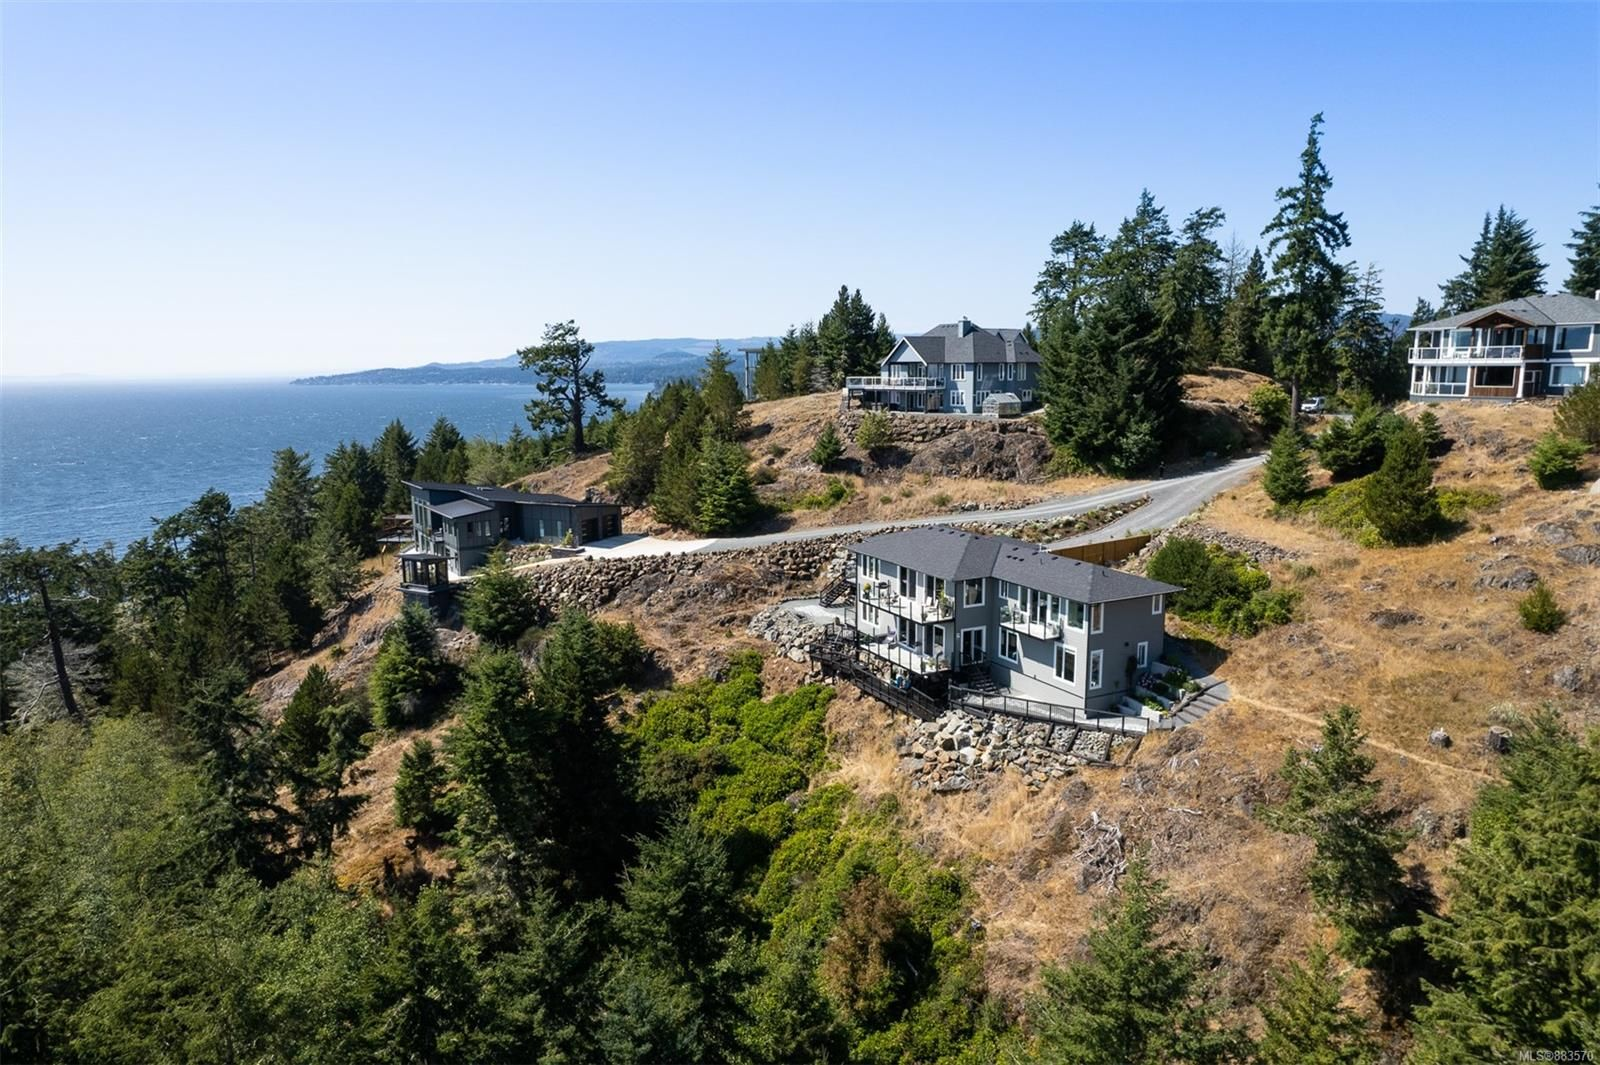 Main Photo: 7470 Thornton Hts in : Sk Silver Spray House for sale (Sooke)  : MLS®# 883570